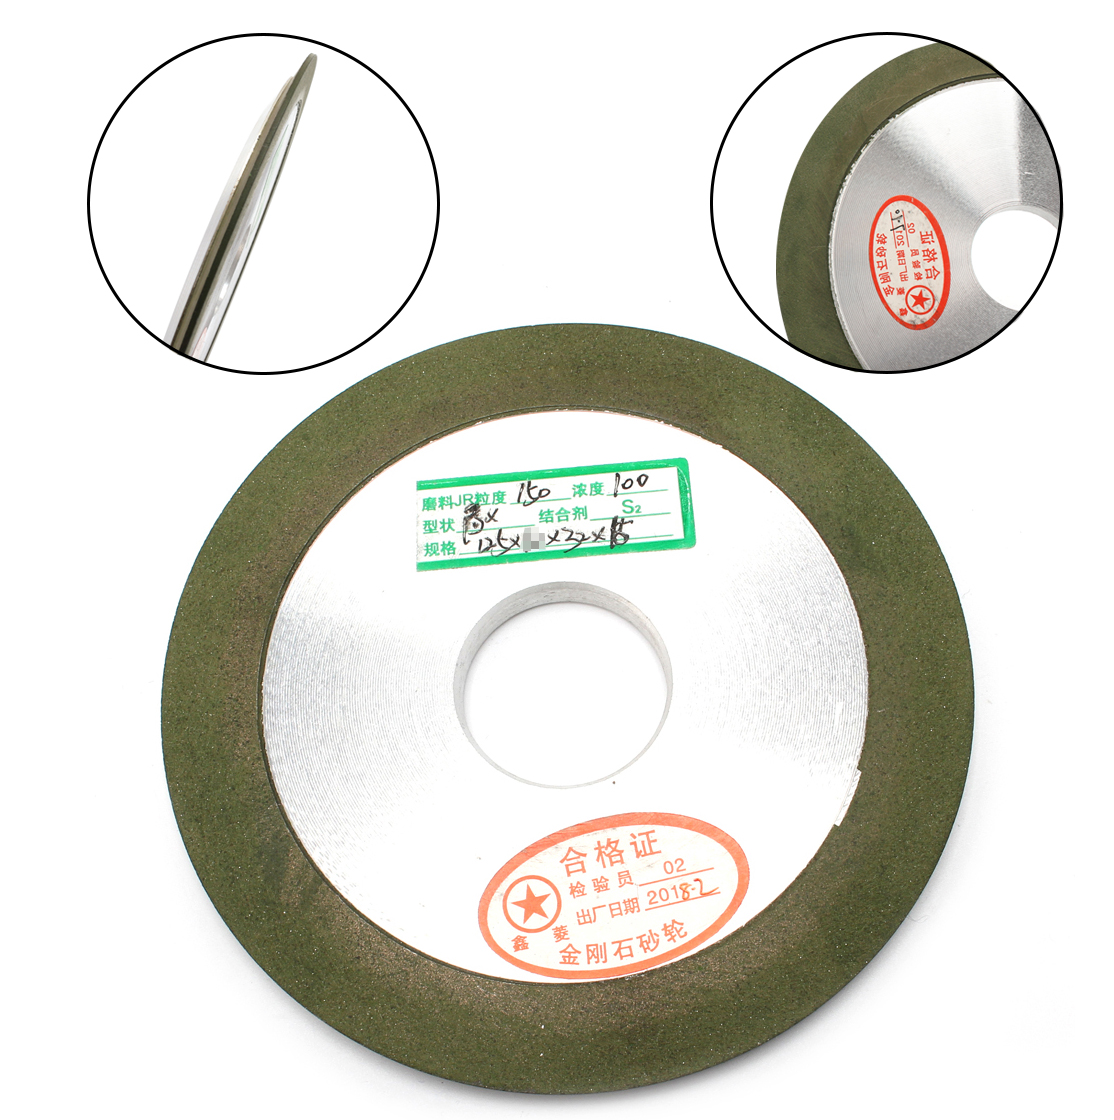 Free Shipping 125mm Diamond Grinding Wheel Grit 150 Cutter Tool Grinder